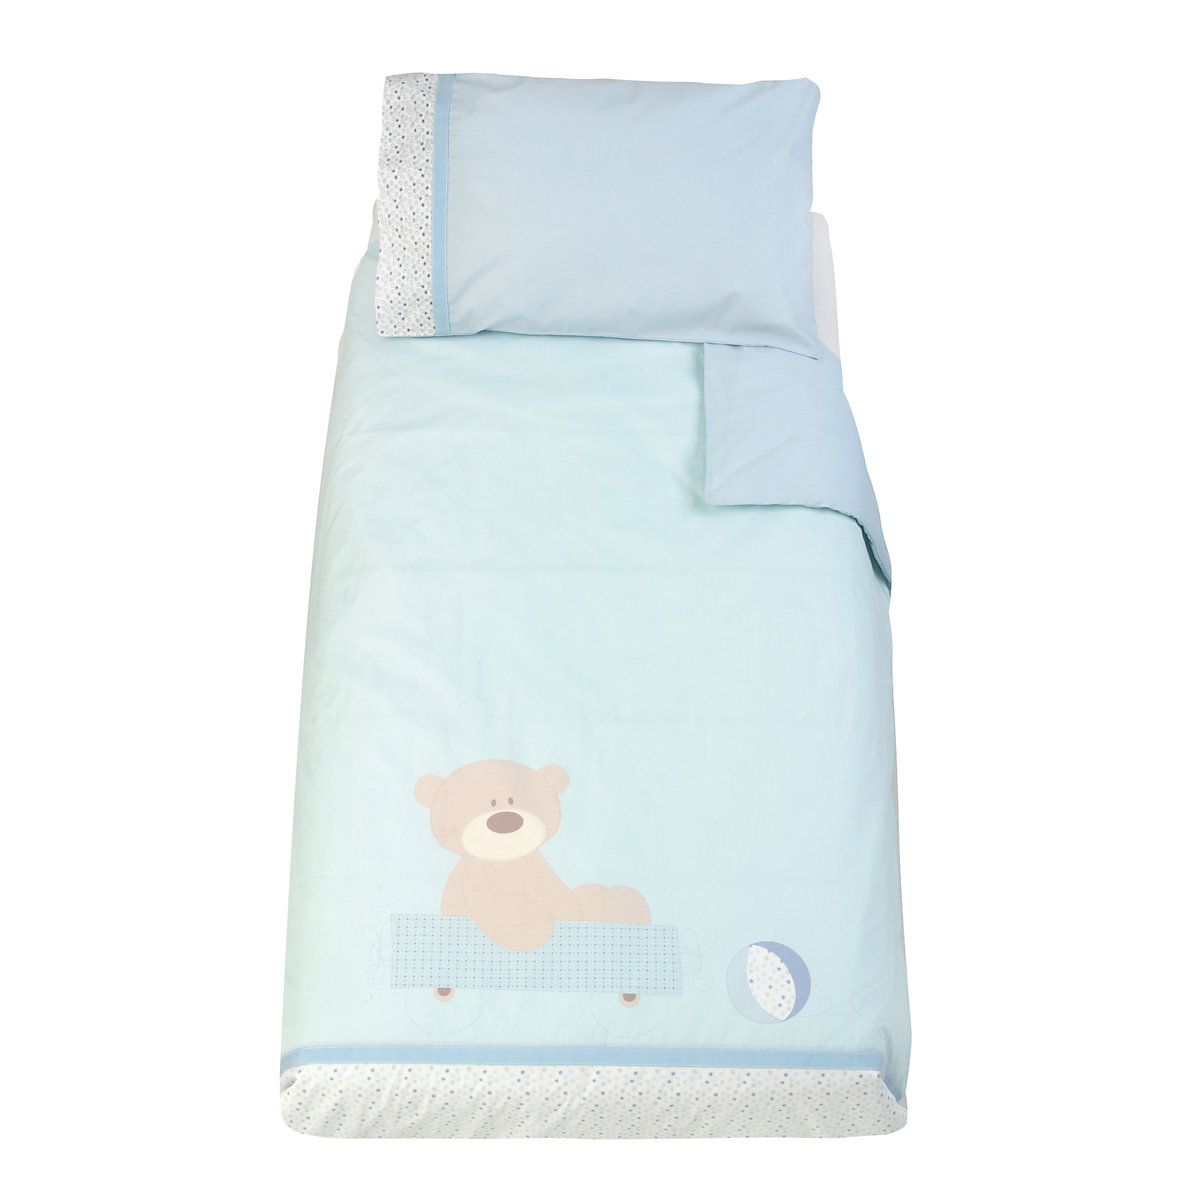 Mothercare B Baby Nursery Loved So Much Cot Bed Duvet Set-